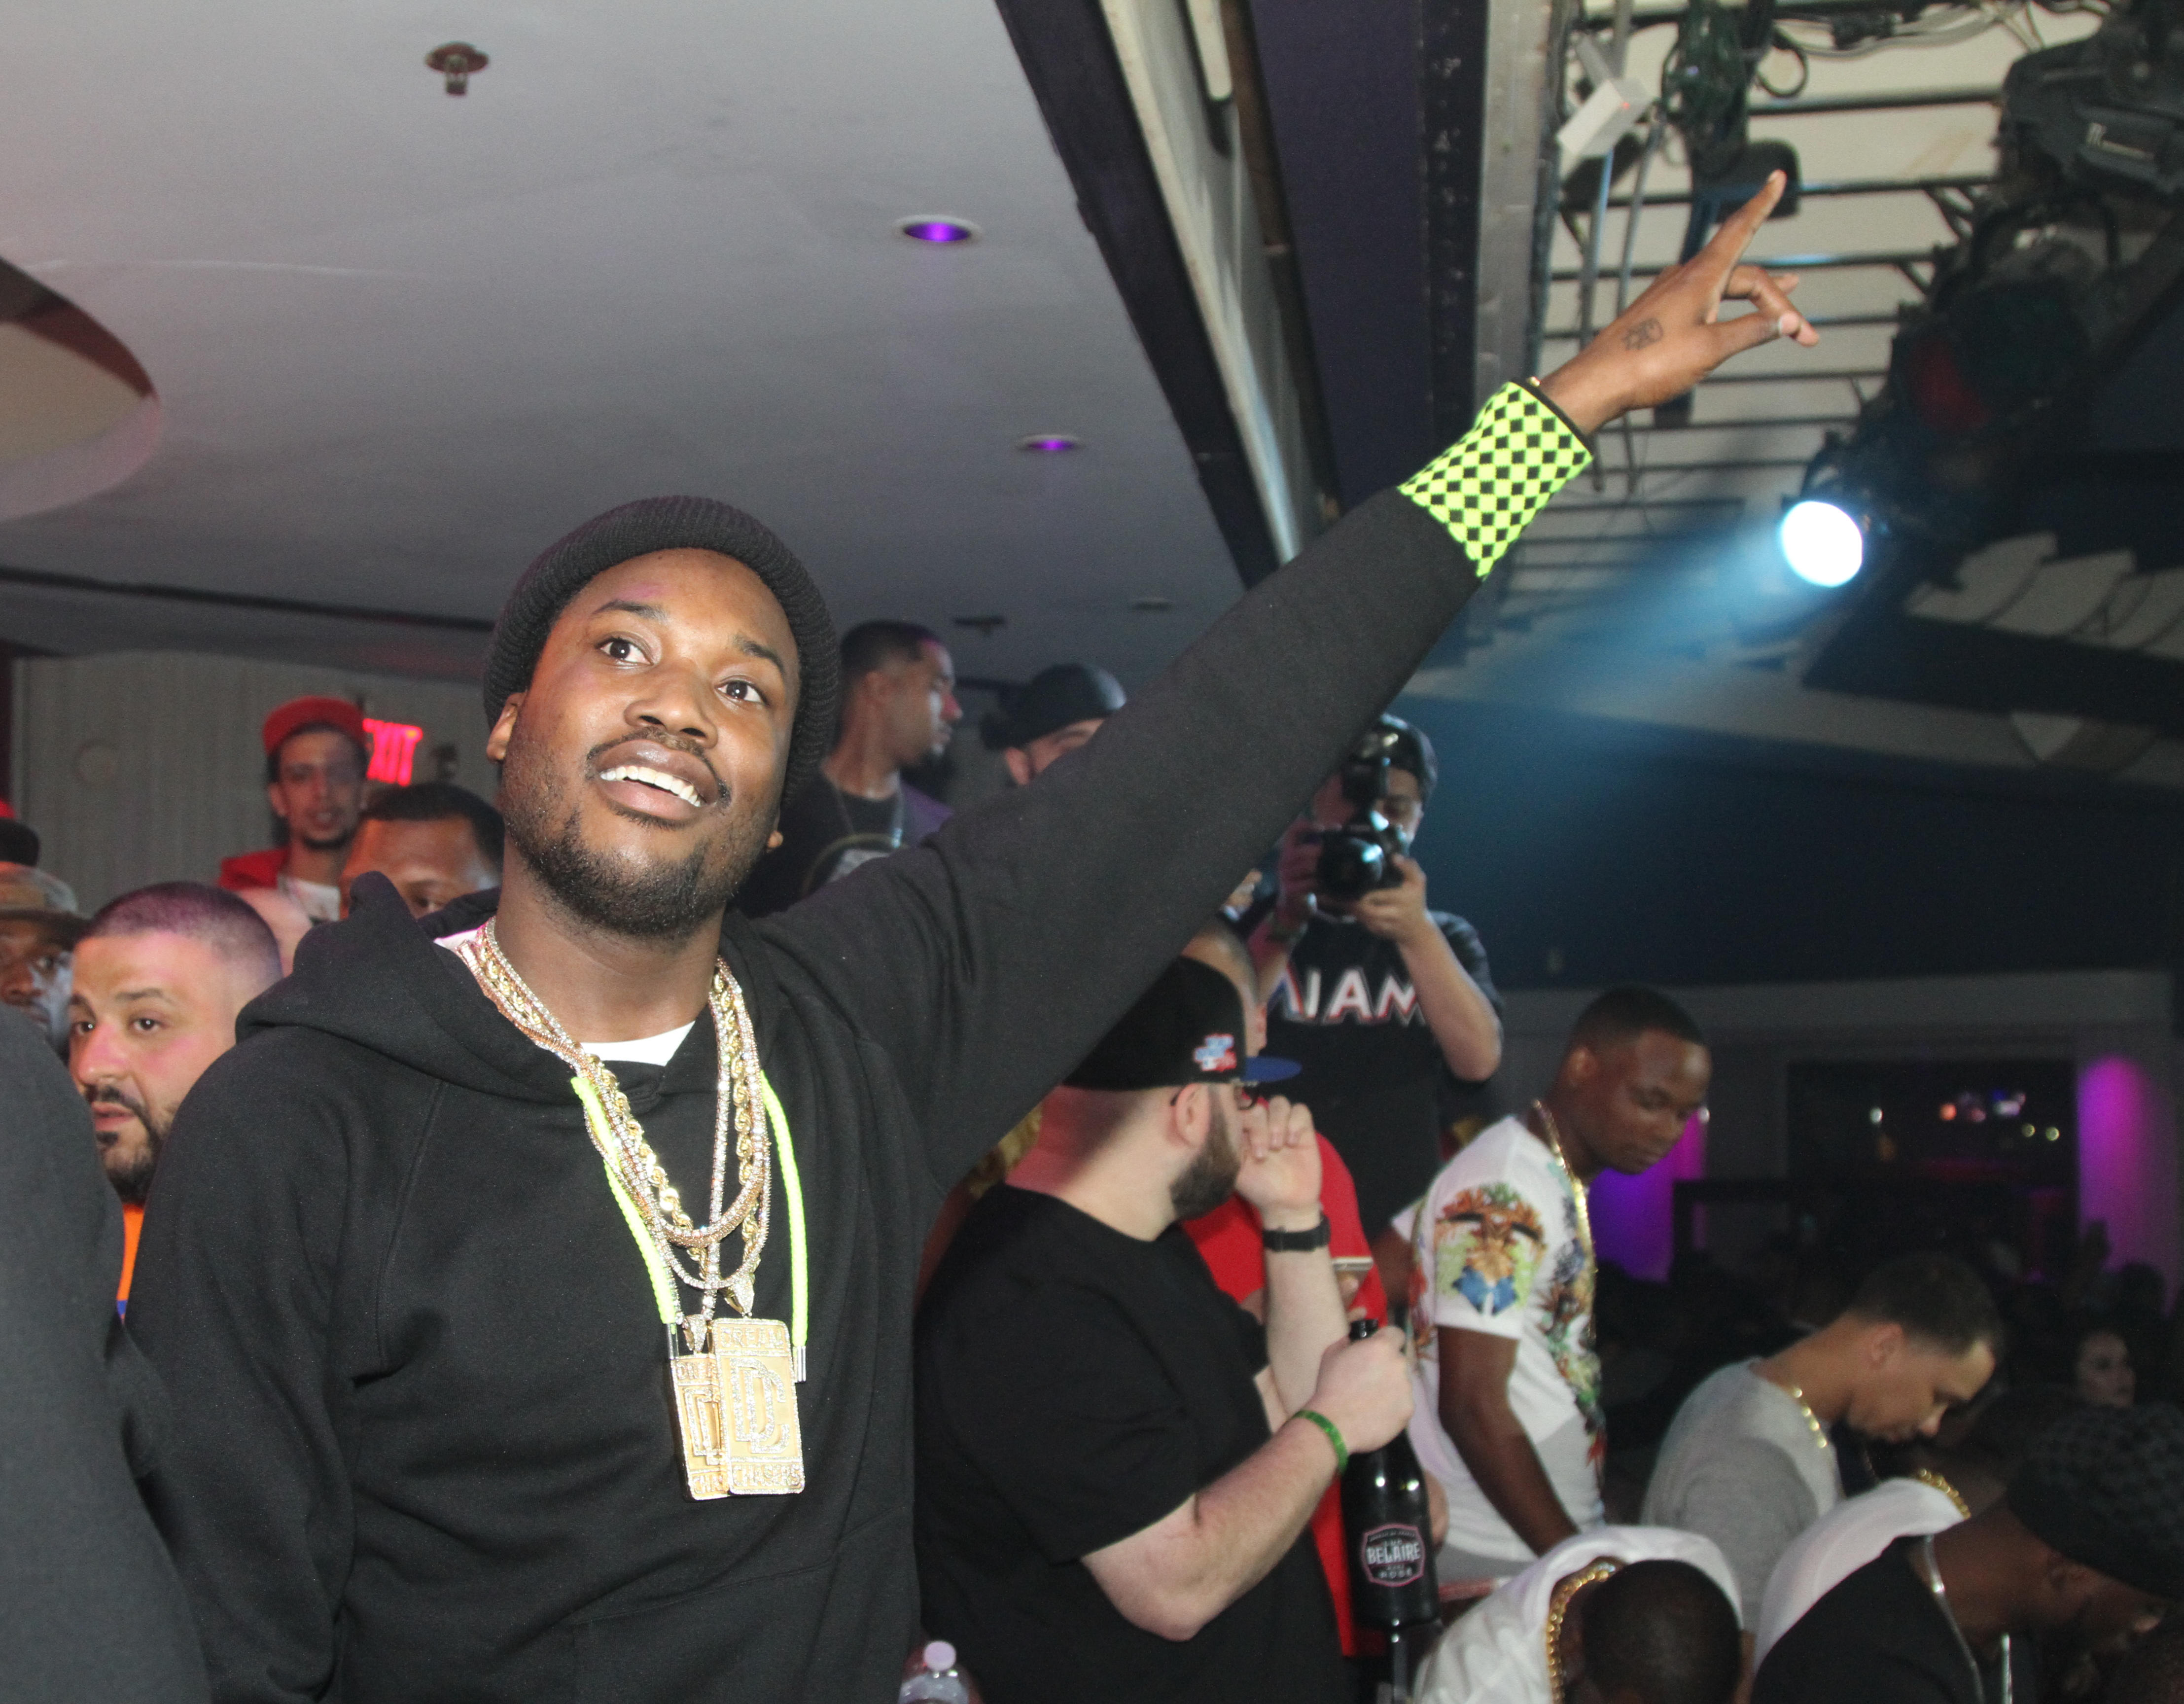 DJ Khaled & Meek Mill Perform At Cafe Iguana